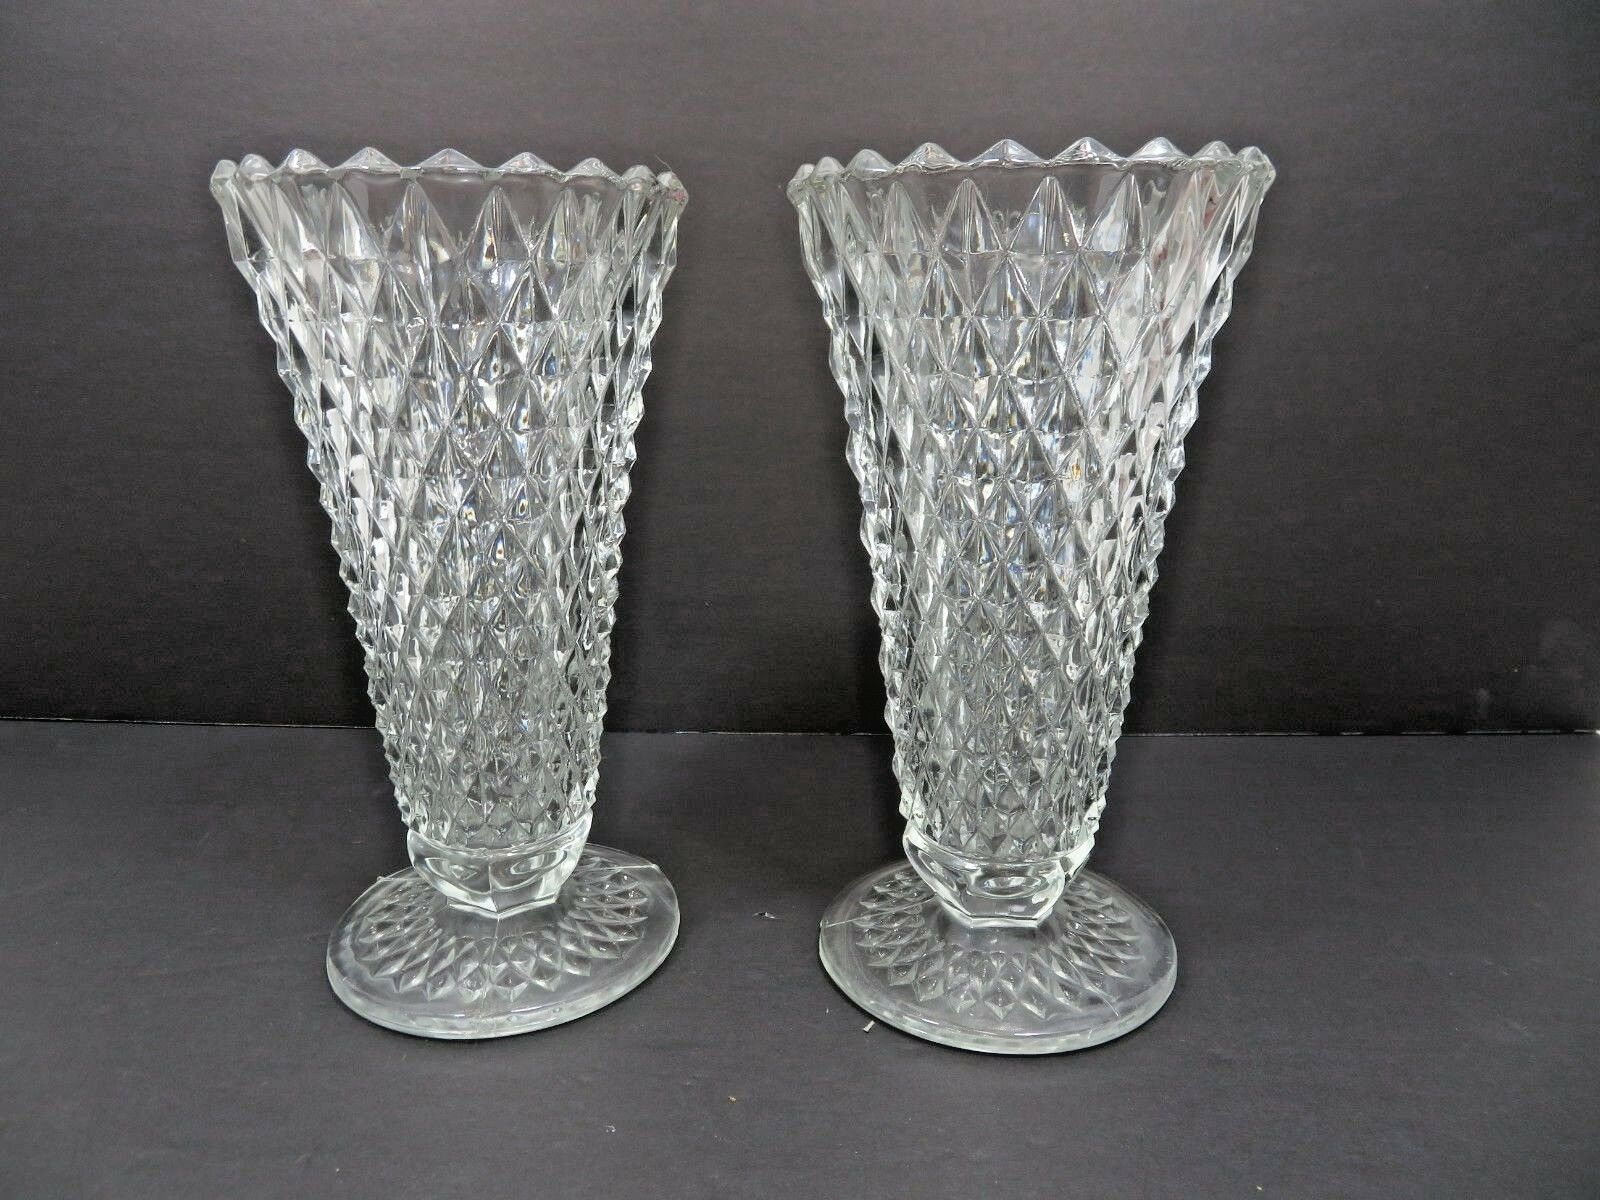 Primary image for Vintage Mid Century Tall Elegant Heisey pair of vase